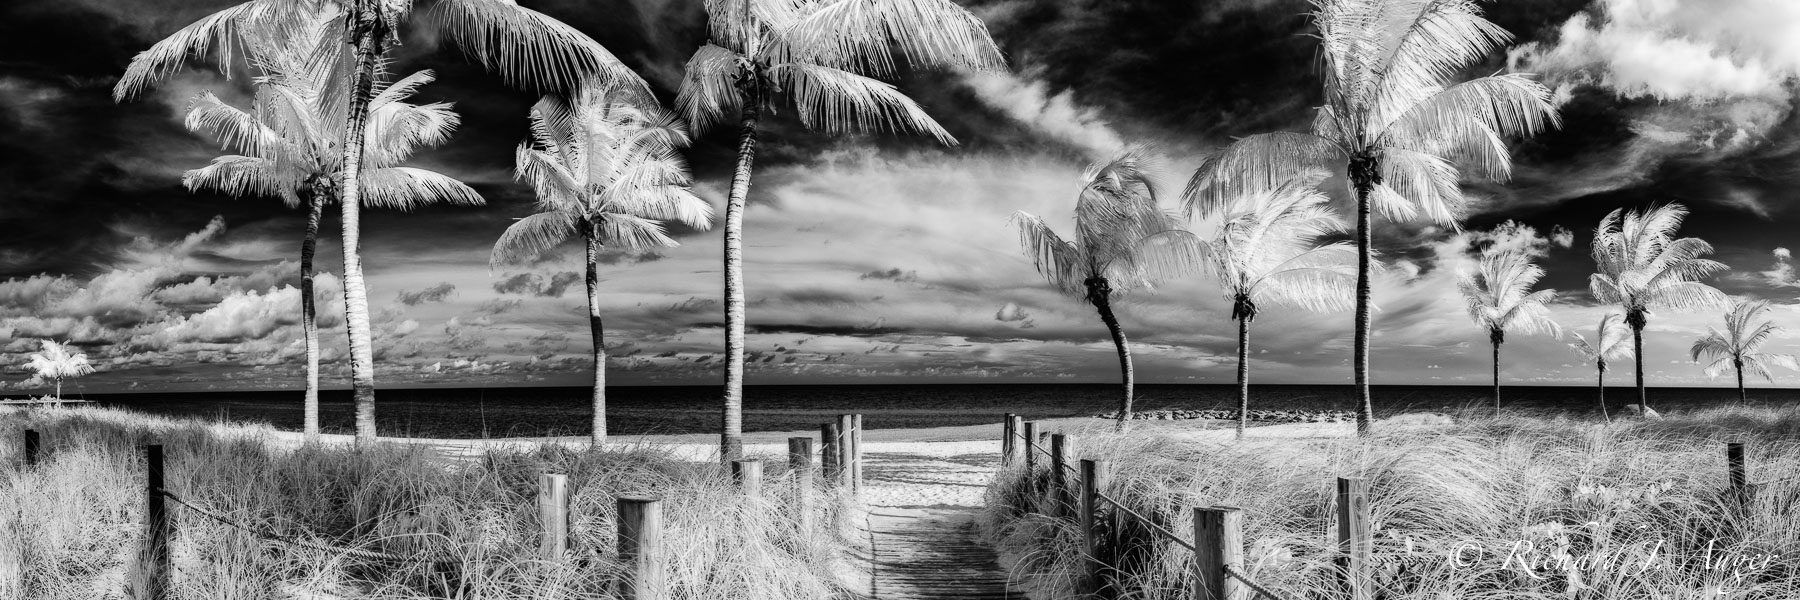 Smathers Beach, Key West, Florida, Palm Trees, Monochrome, Black and White, Beach, Ocean, Paradise, Photograph, Landscape